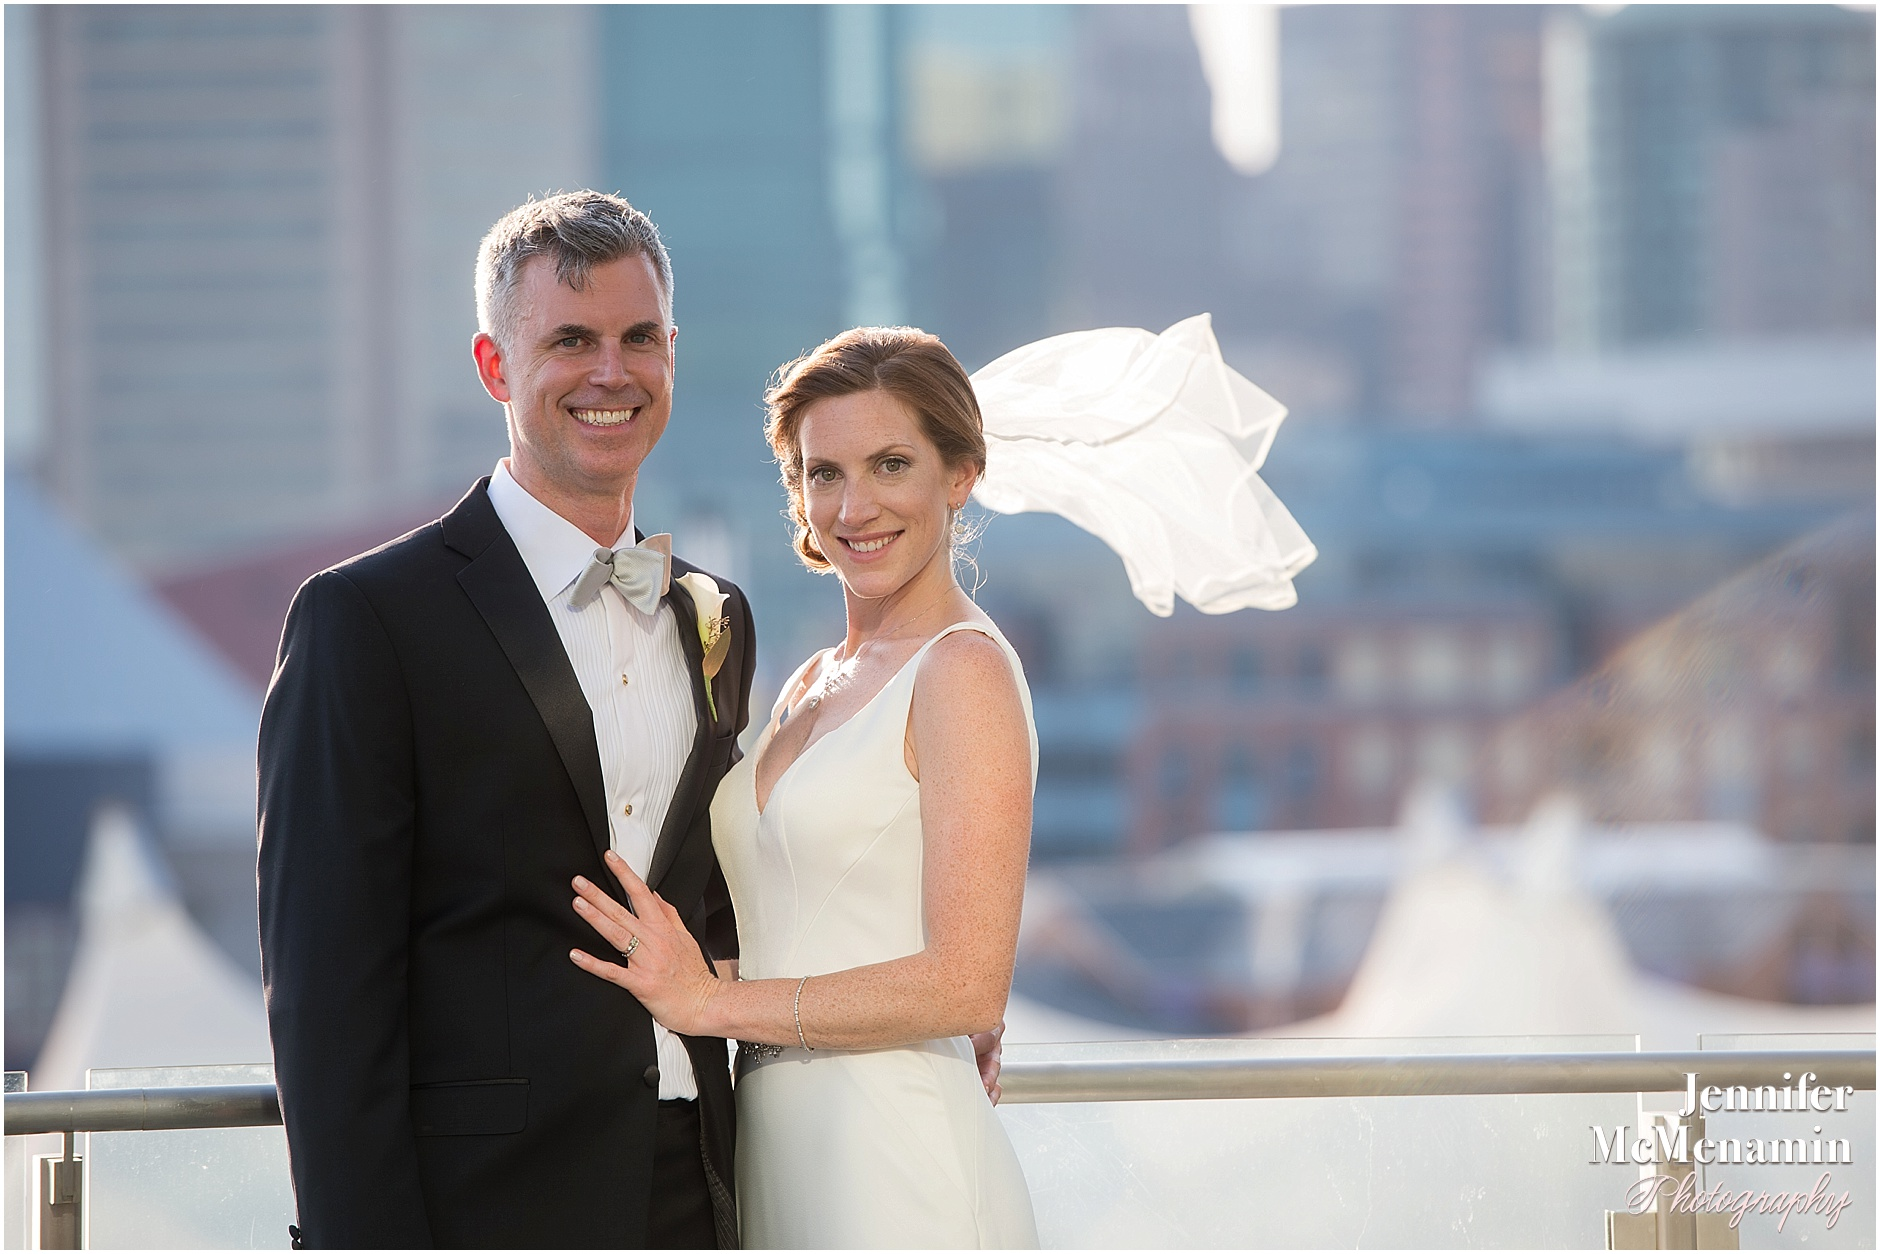 045-Four-Seasons-Baltimore-wedding-Jennifer-McMenamin-Photography